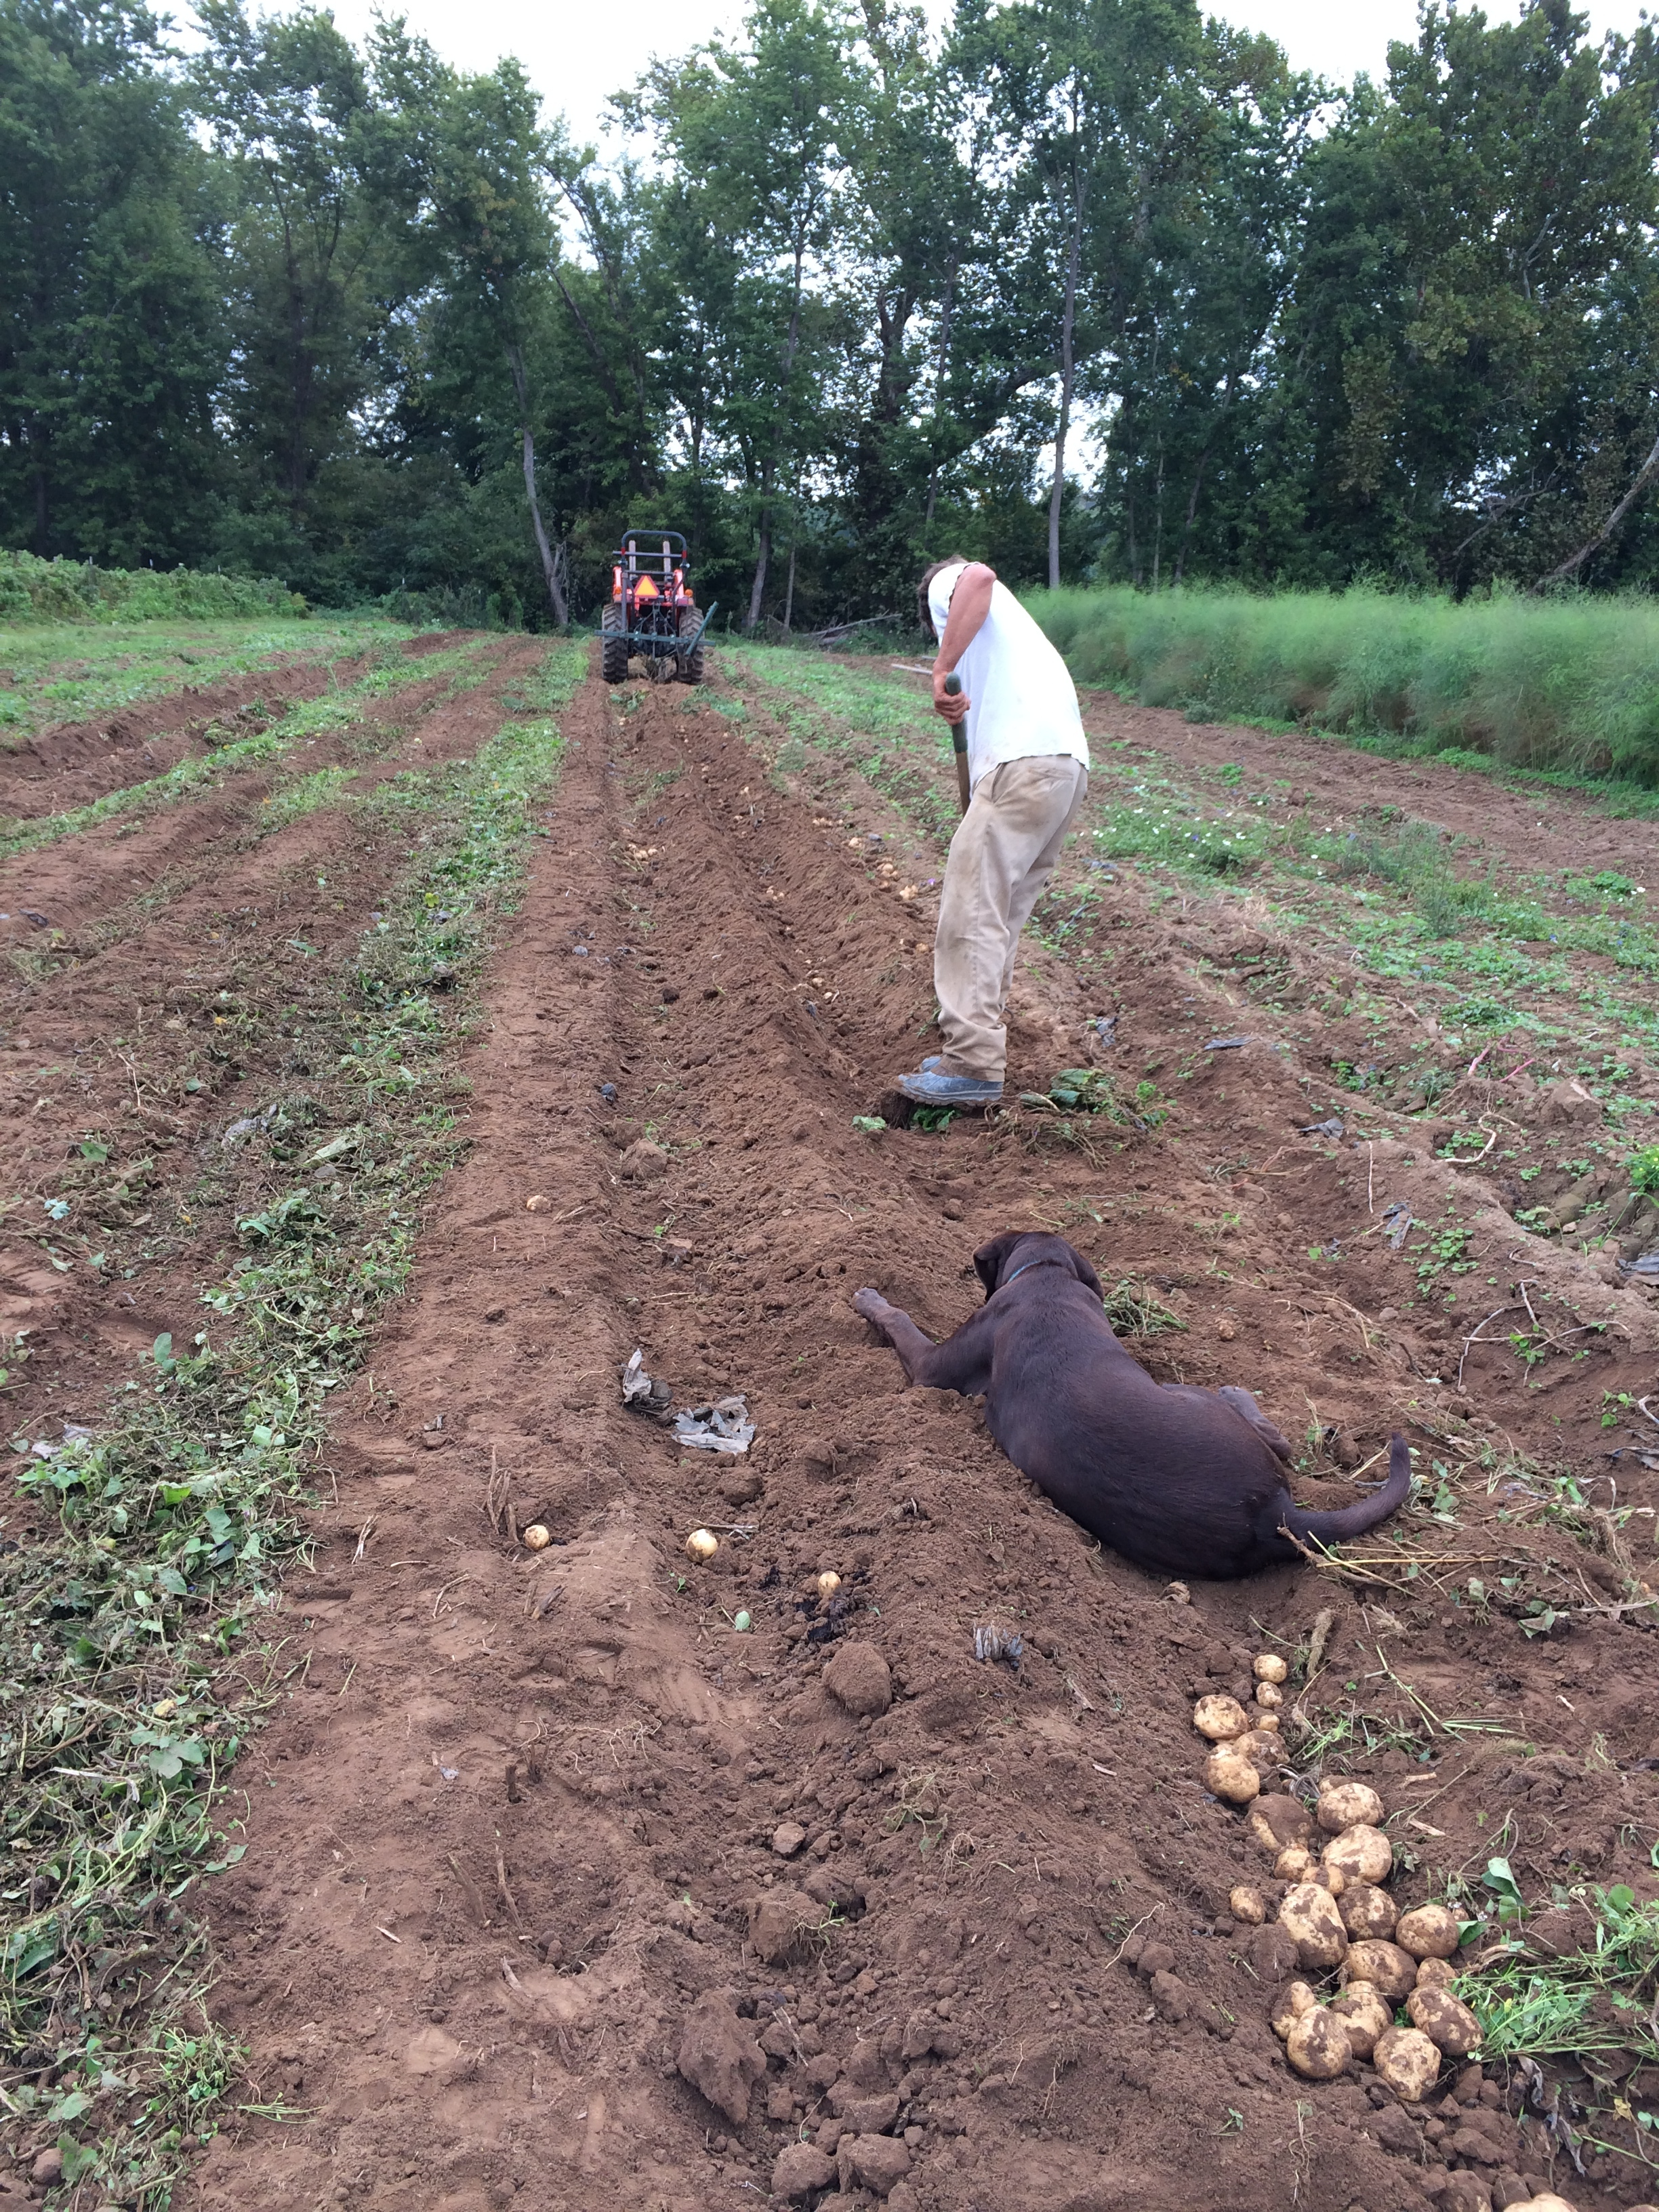 Ryan, working hard to harvest potatoes, while Irwin, his beloved pup, waits patiently to play